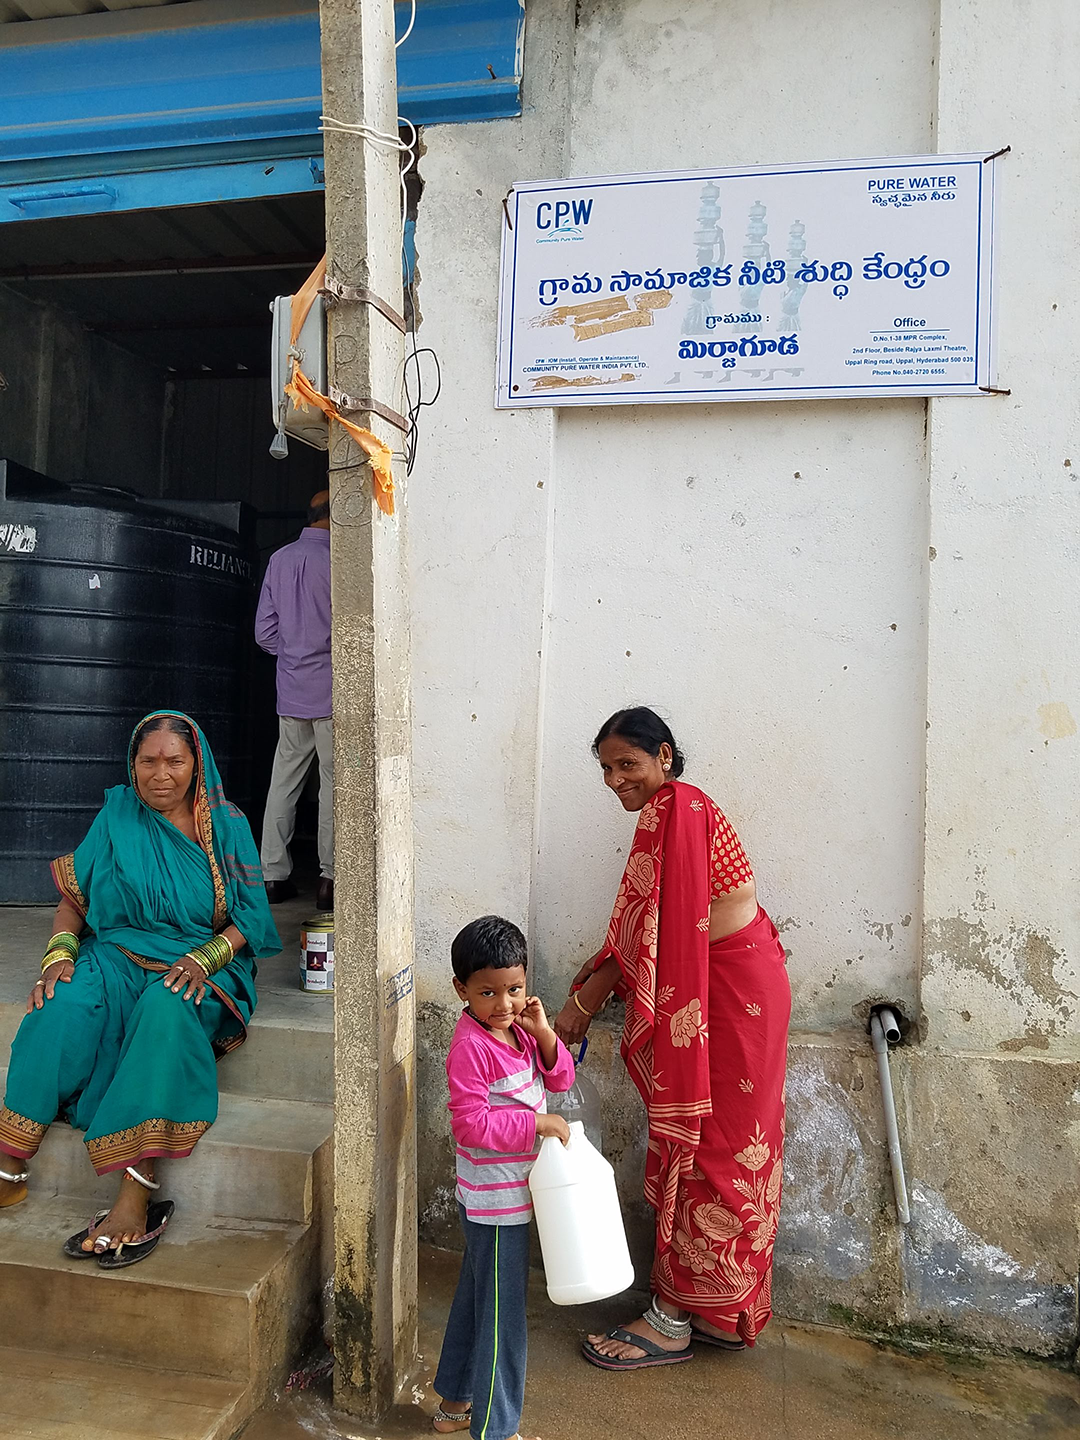 Residents of Pulgacherla collecting water from a Community Pure Water Center